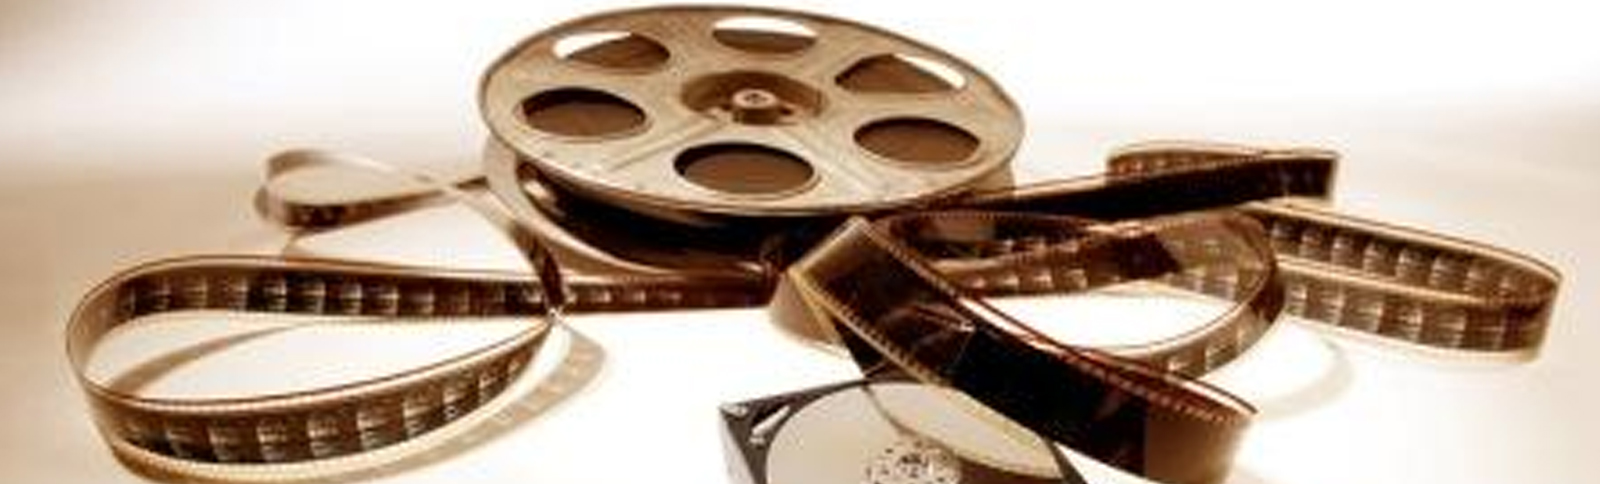 16MM CINE FILM TO DVD OR DIGITAL FILE